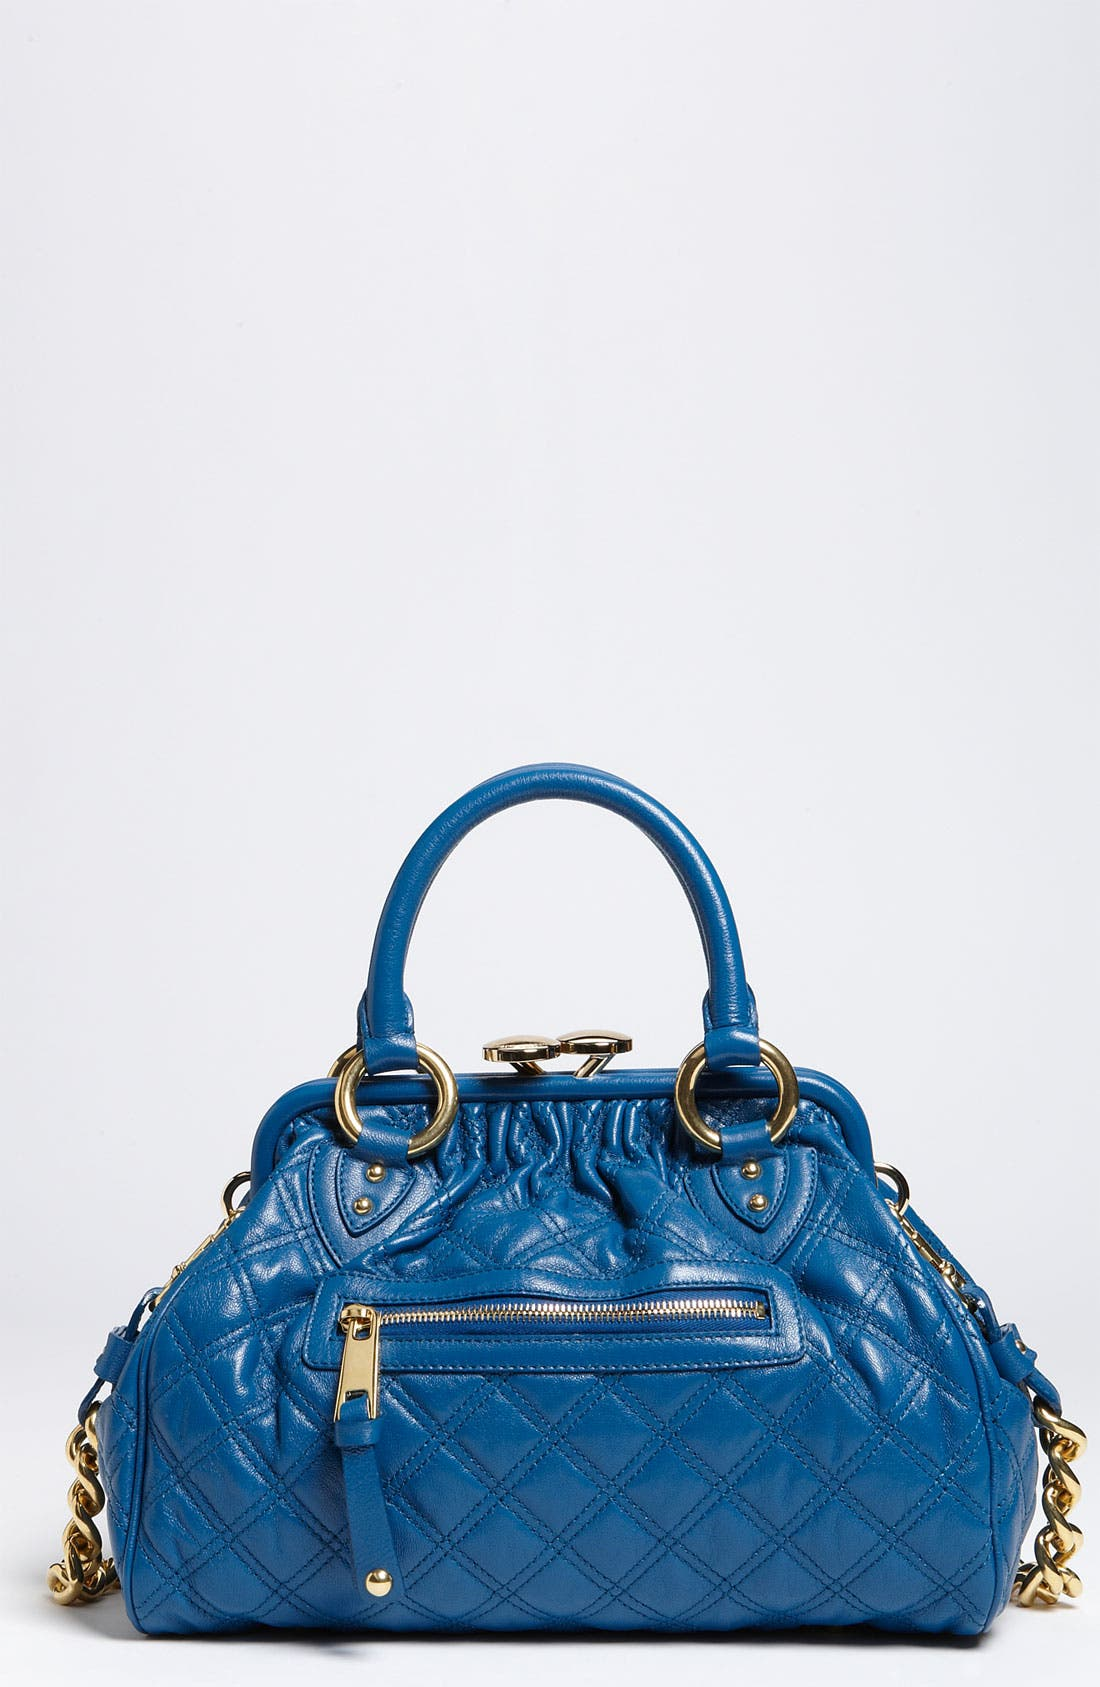 Alternate Image 1 Selected - MARC JACOBS 'Quilting Mini Stam' Leather Satchel